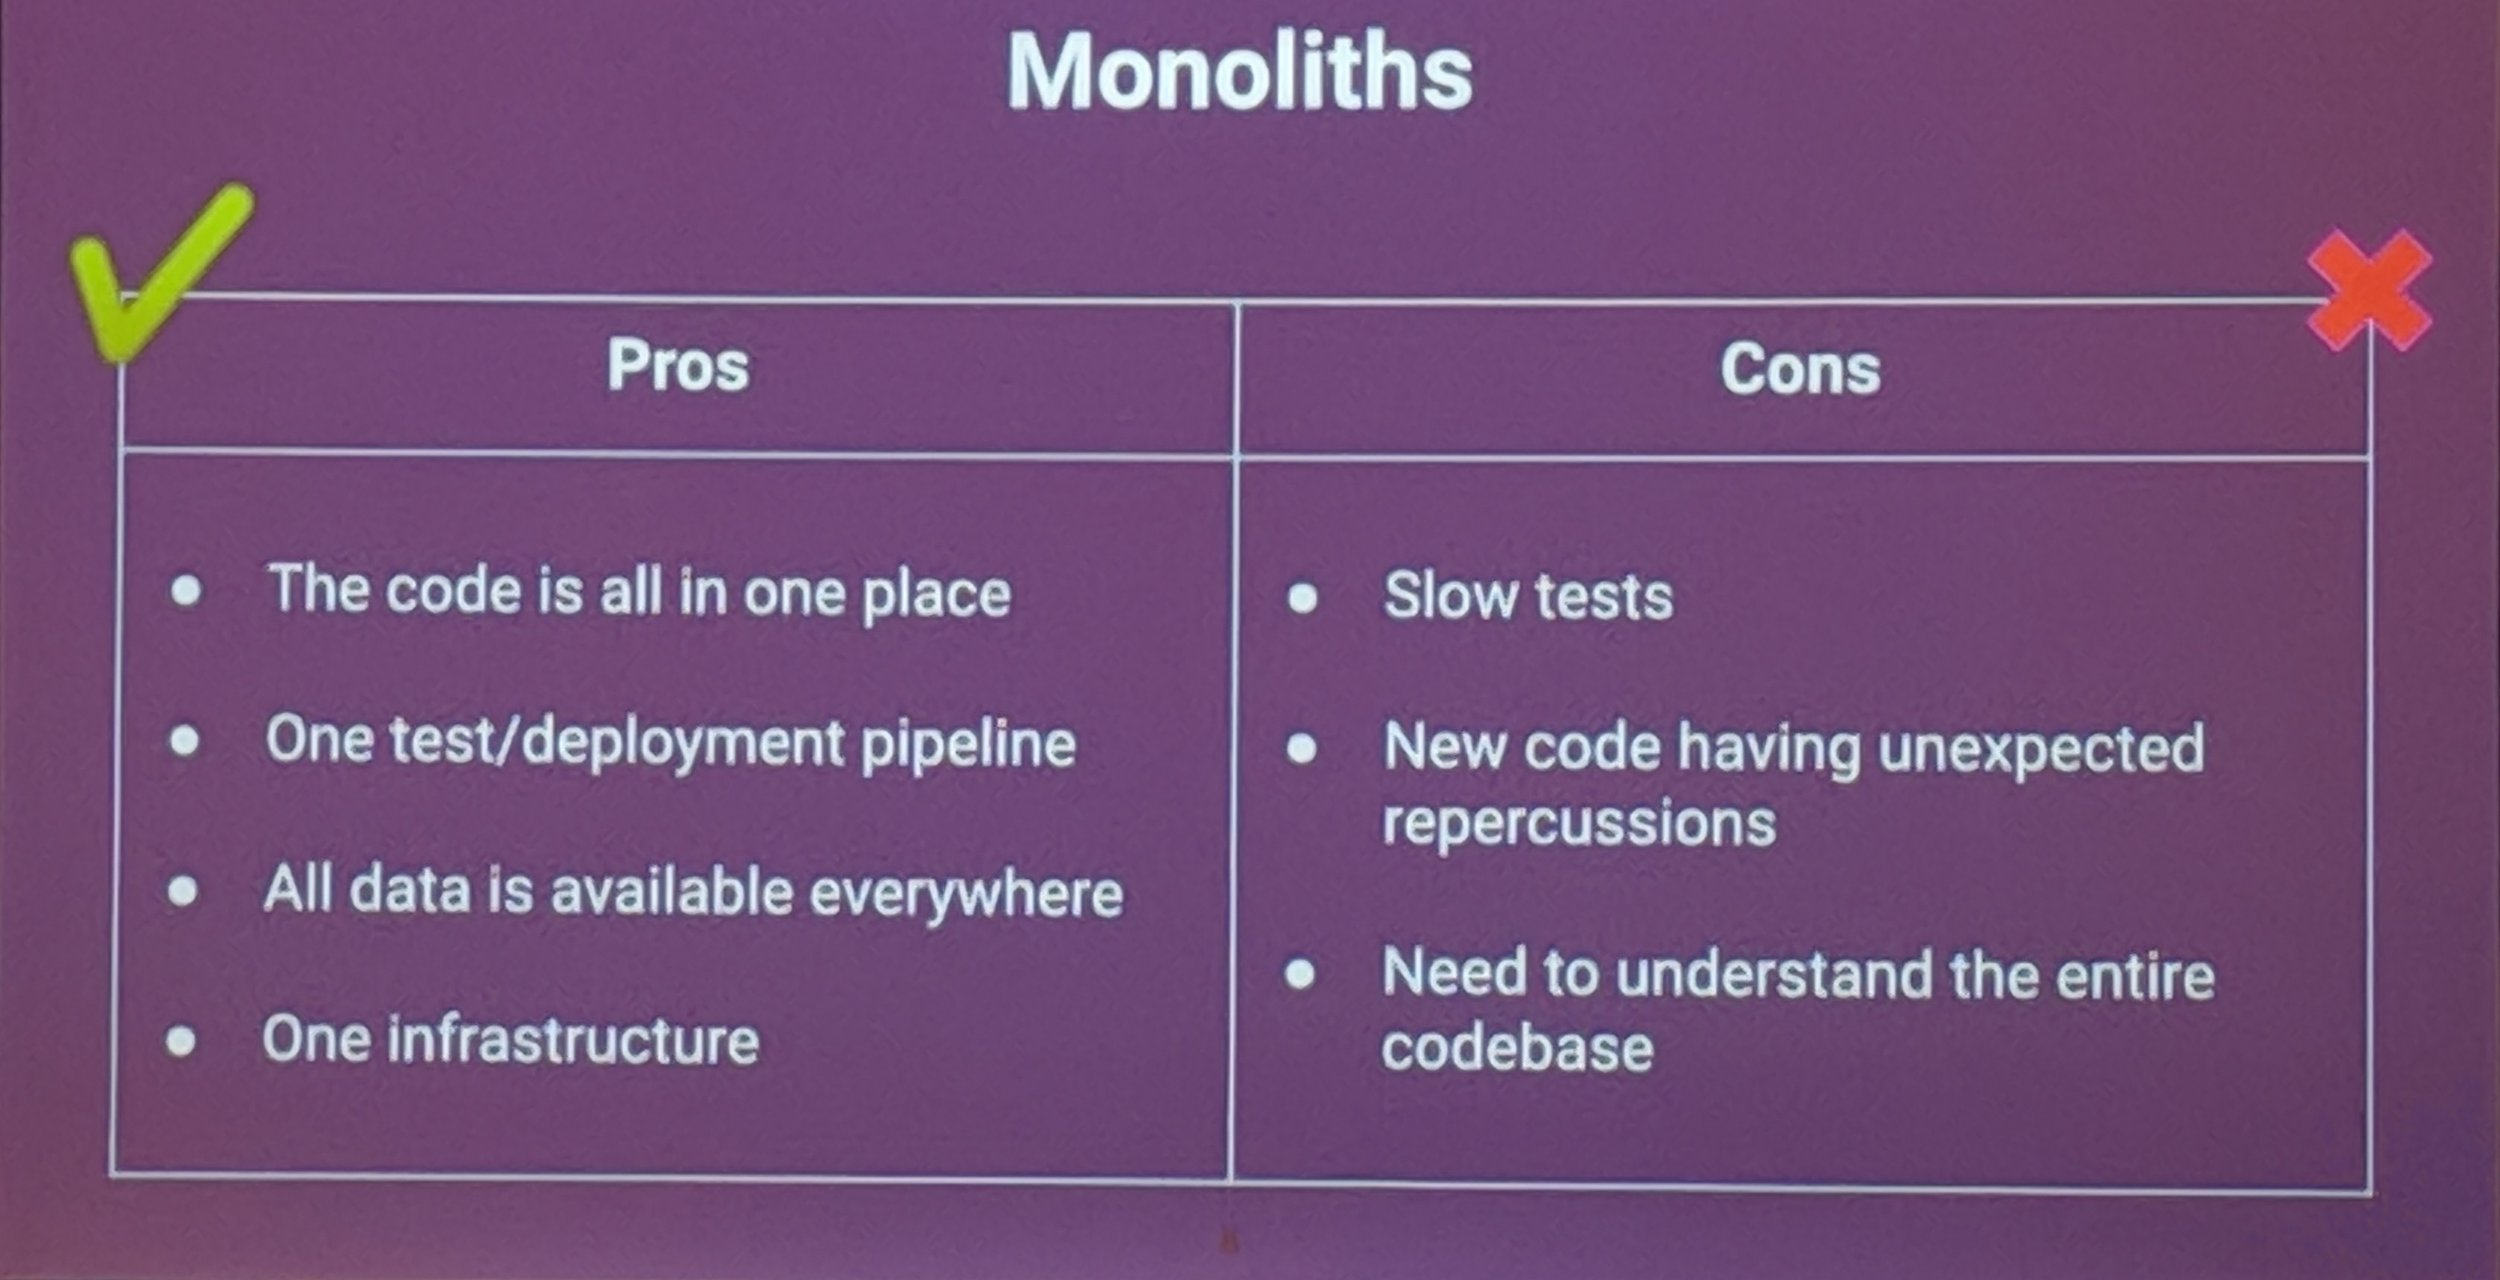 Kirsten's slide comparing the pros and cons of monoliths.  Pros: code all in one place, one test/deploy pipelines, all data available everywhere, one infrastructure.  Cons: slow tests, new code having unexpected repercussions, need to understand the entire codebase.